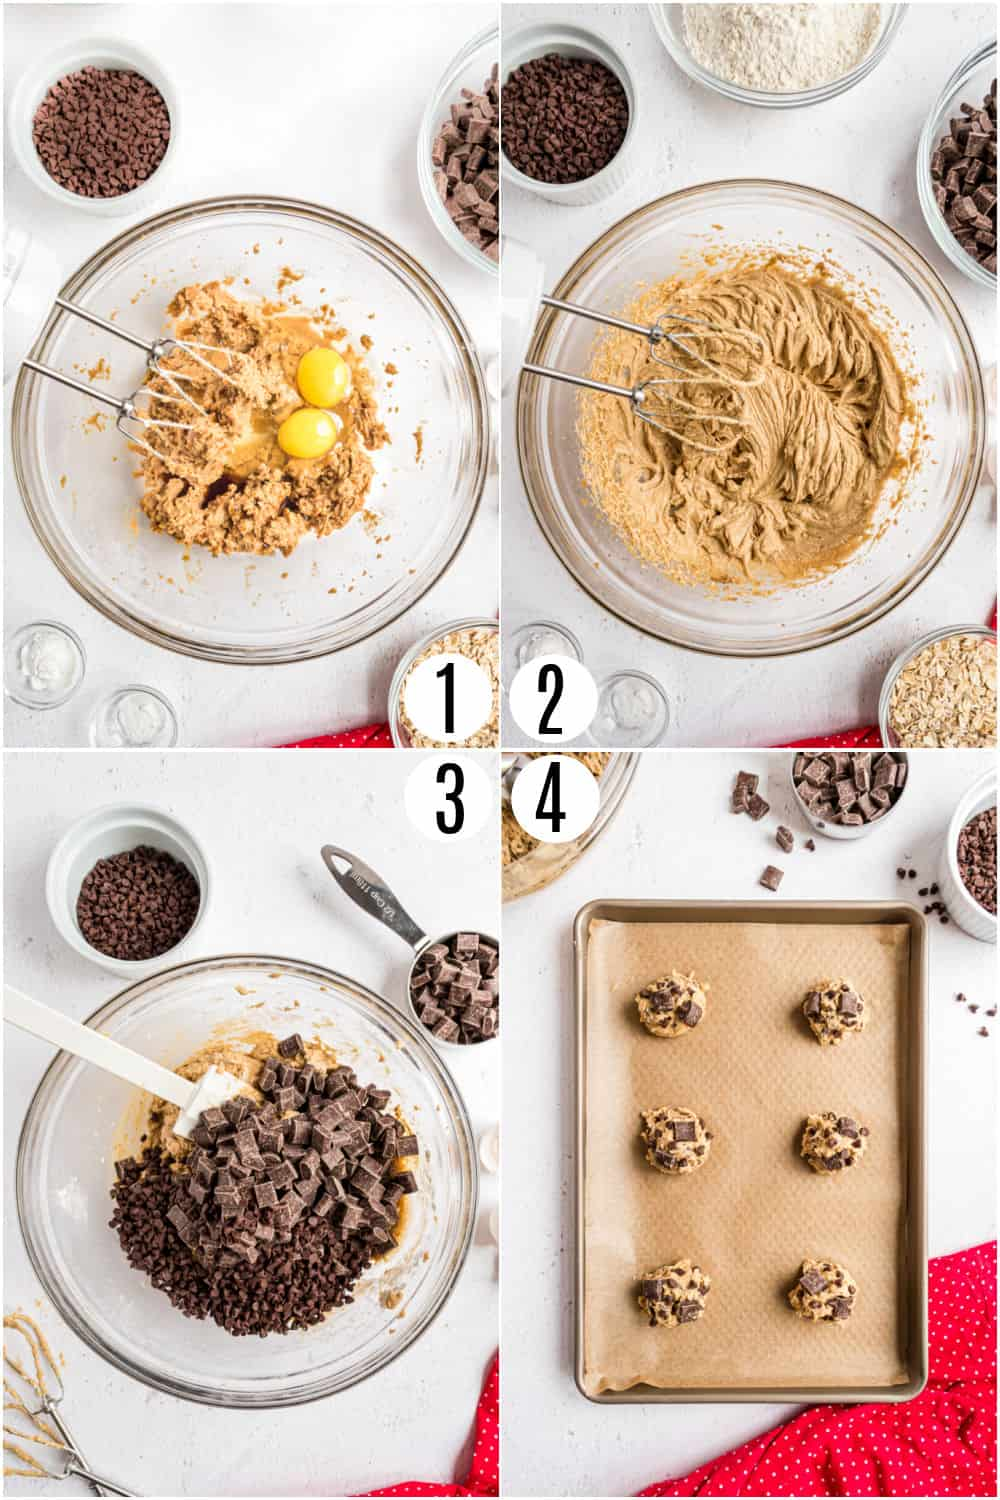 Step by step instructions showing how to make chocolate chunk cookies.